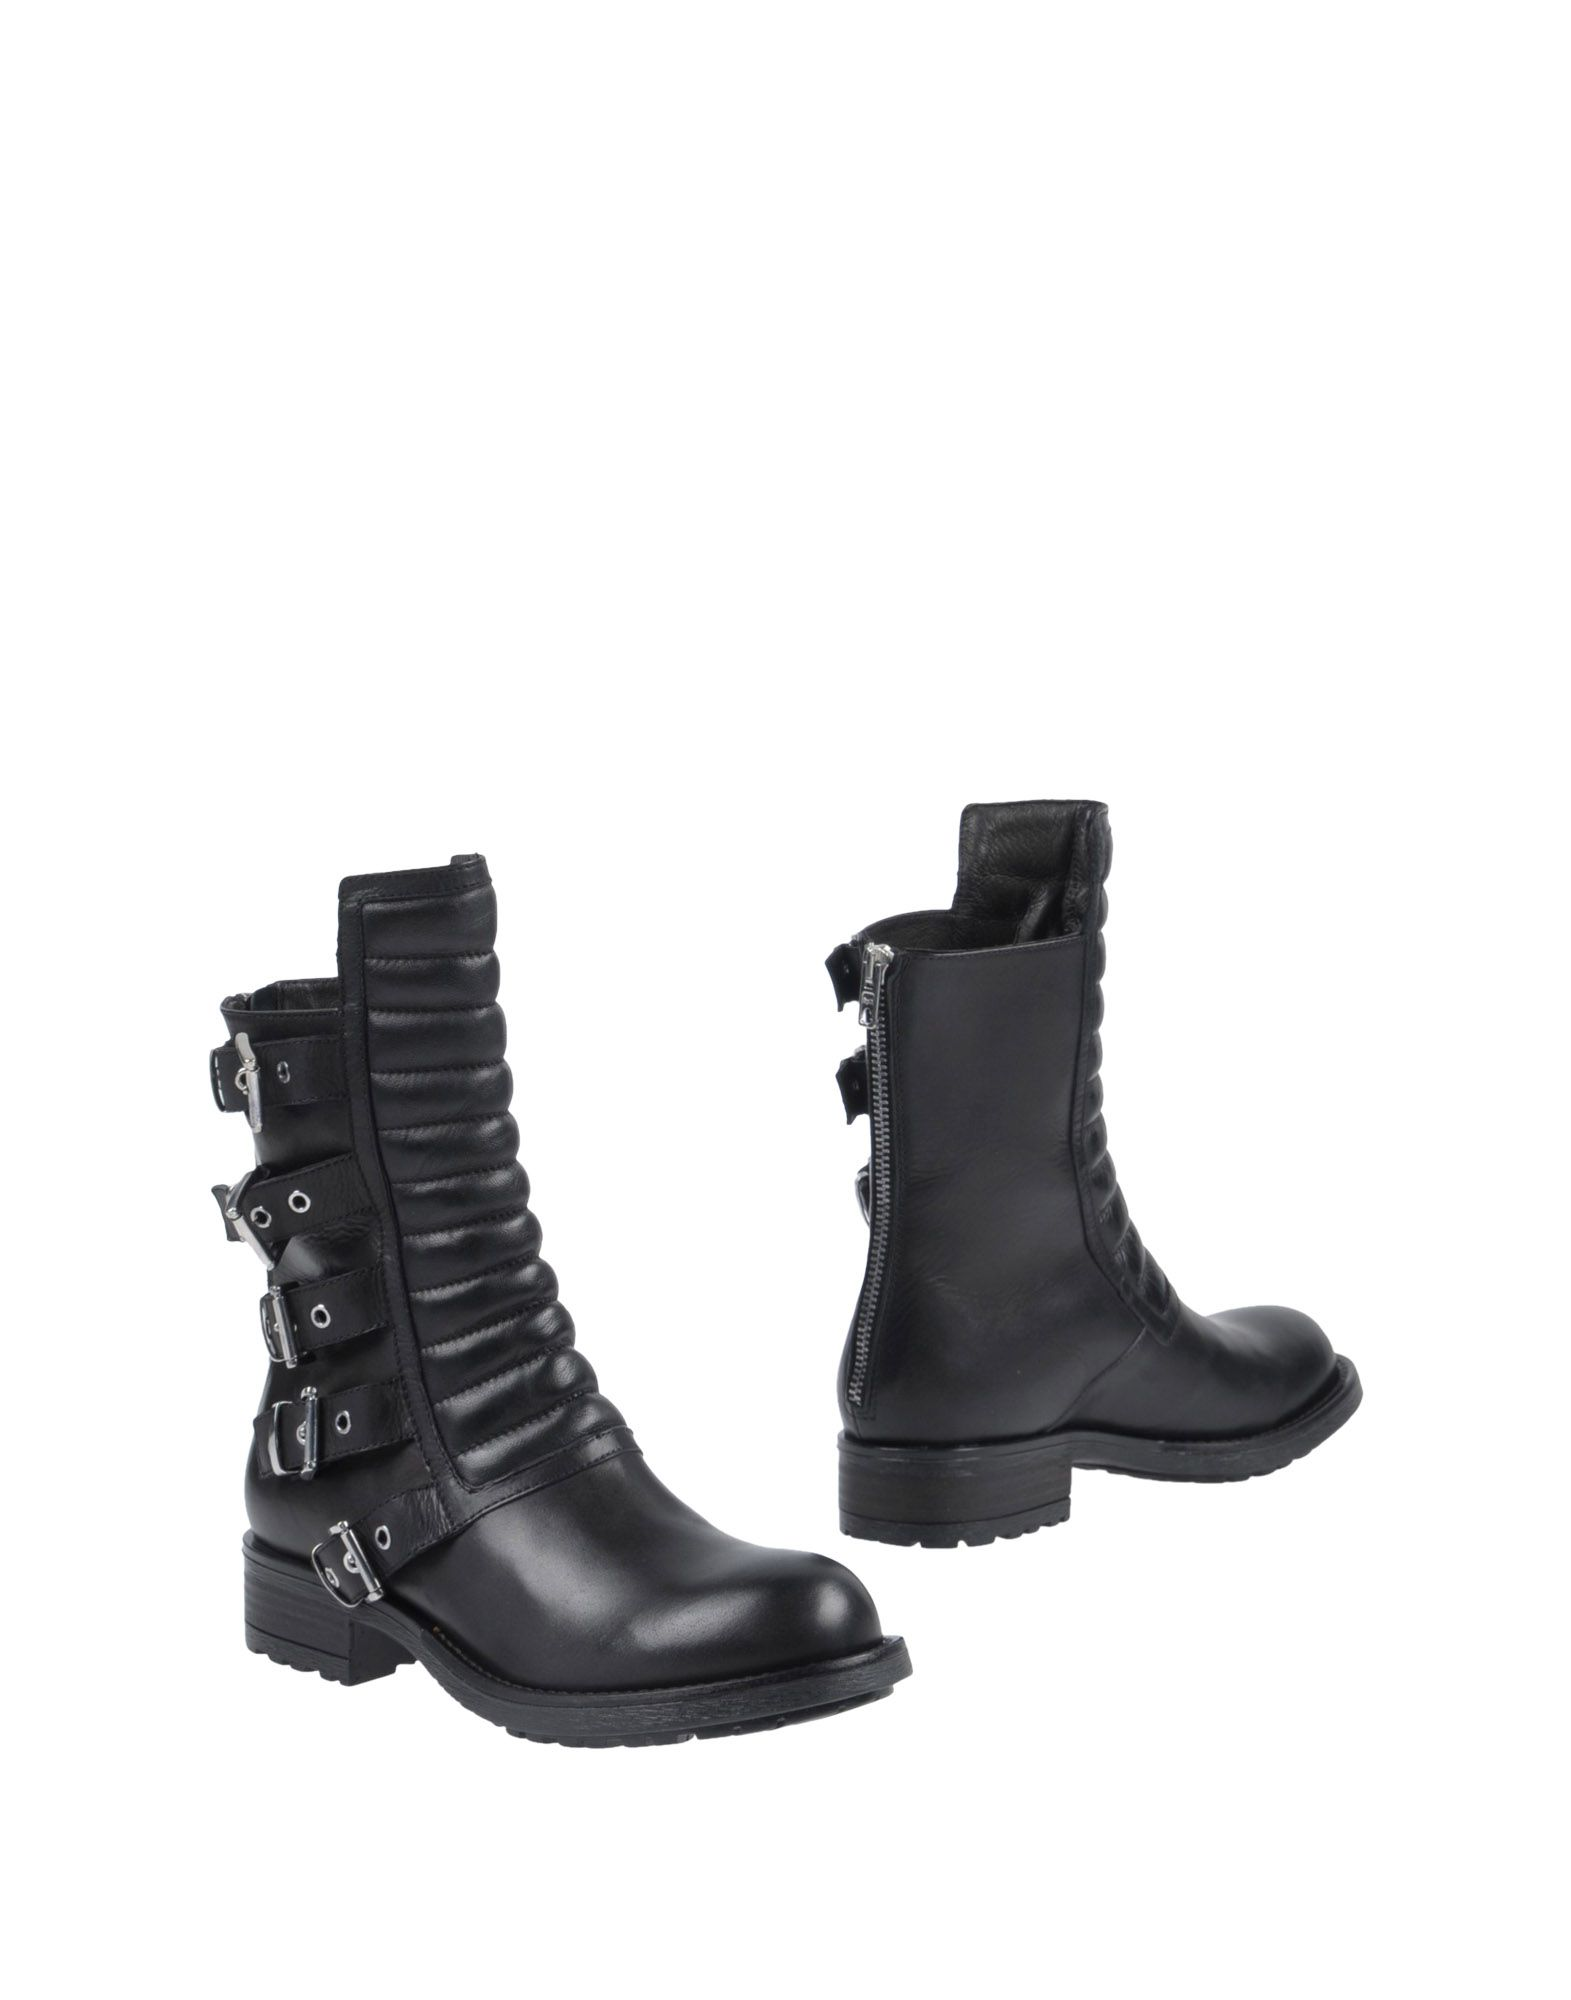 Bottine Spaziomoda Femme - Bottines Spaziomoda sur